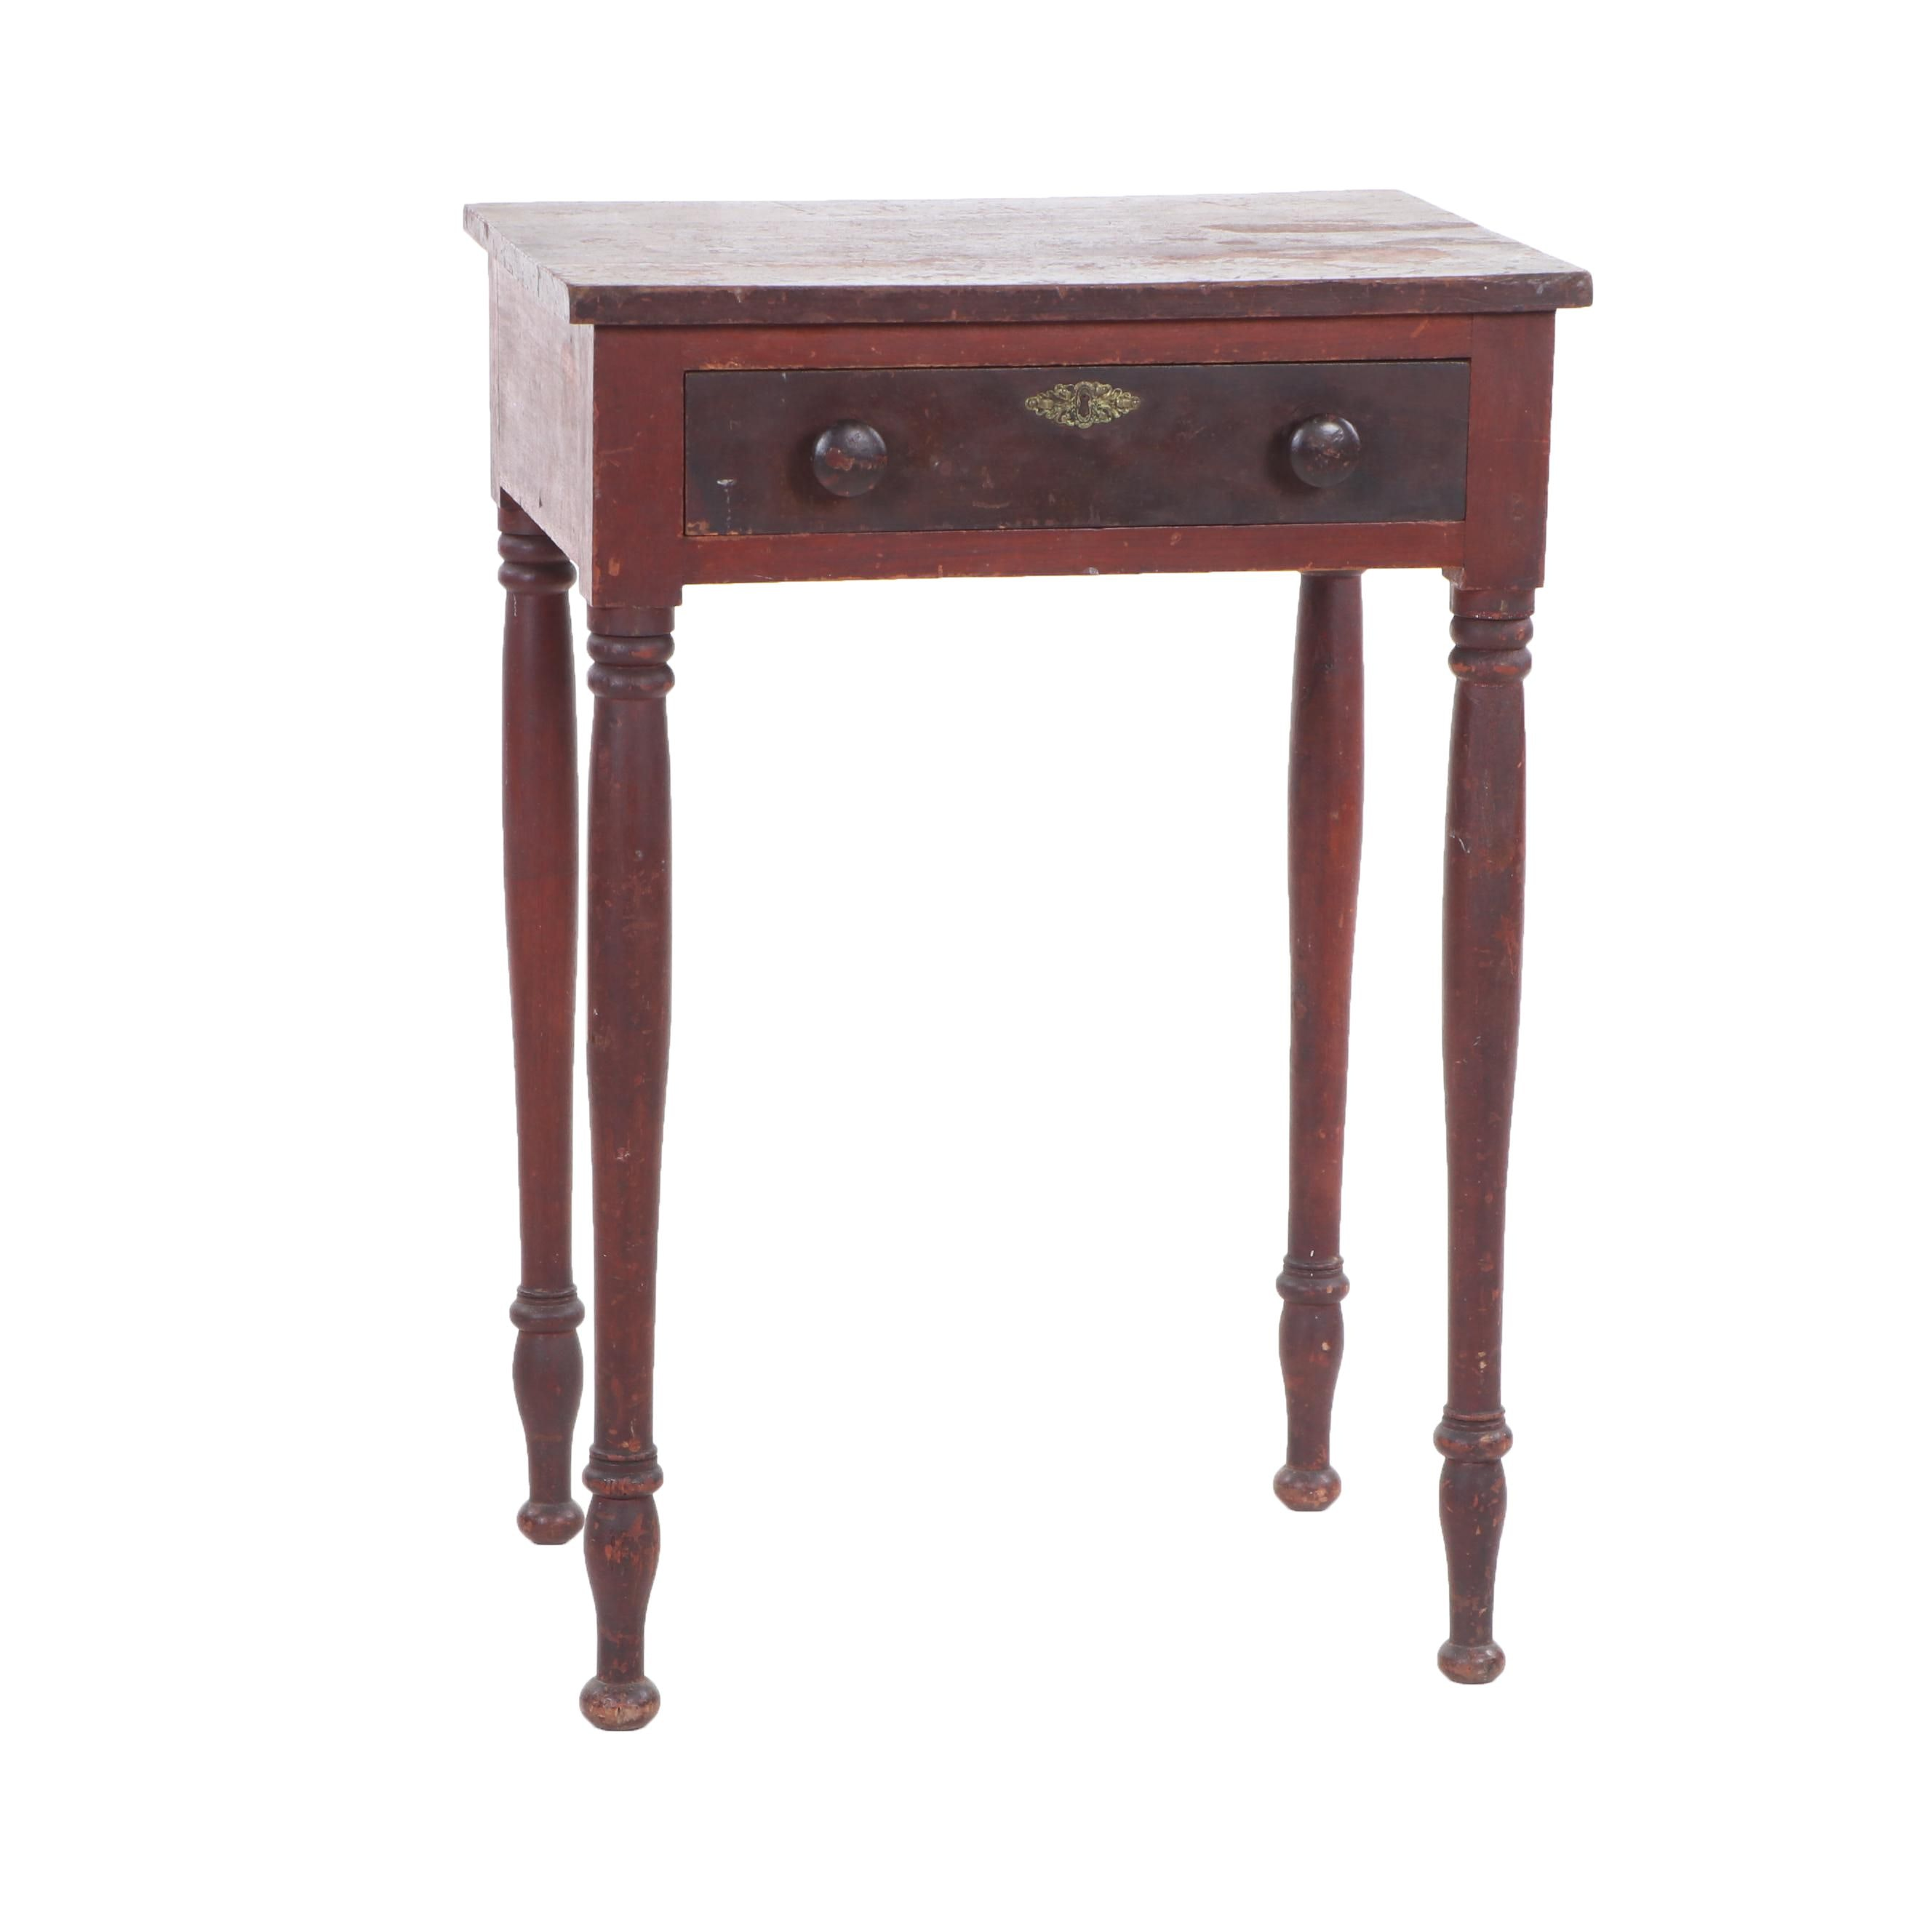 Late Federal Painted Wooden Single-Drawer Table, Mid 19th Century